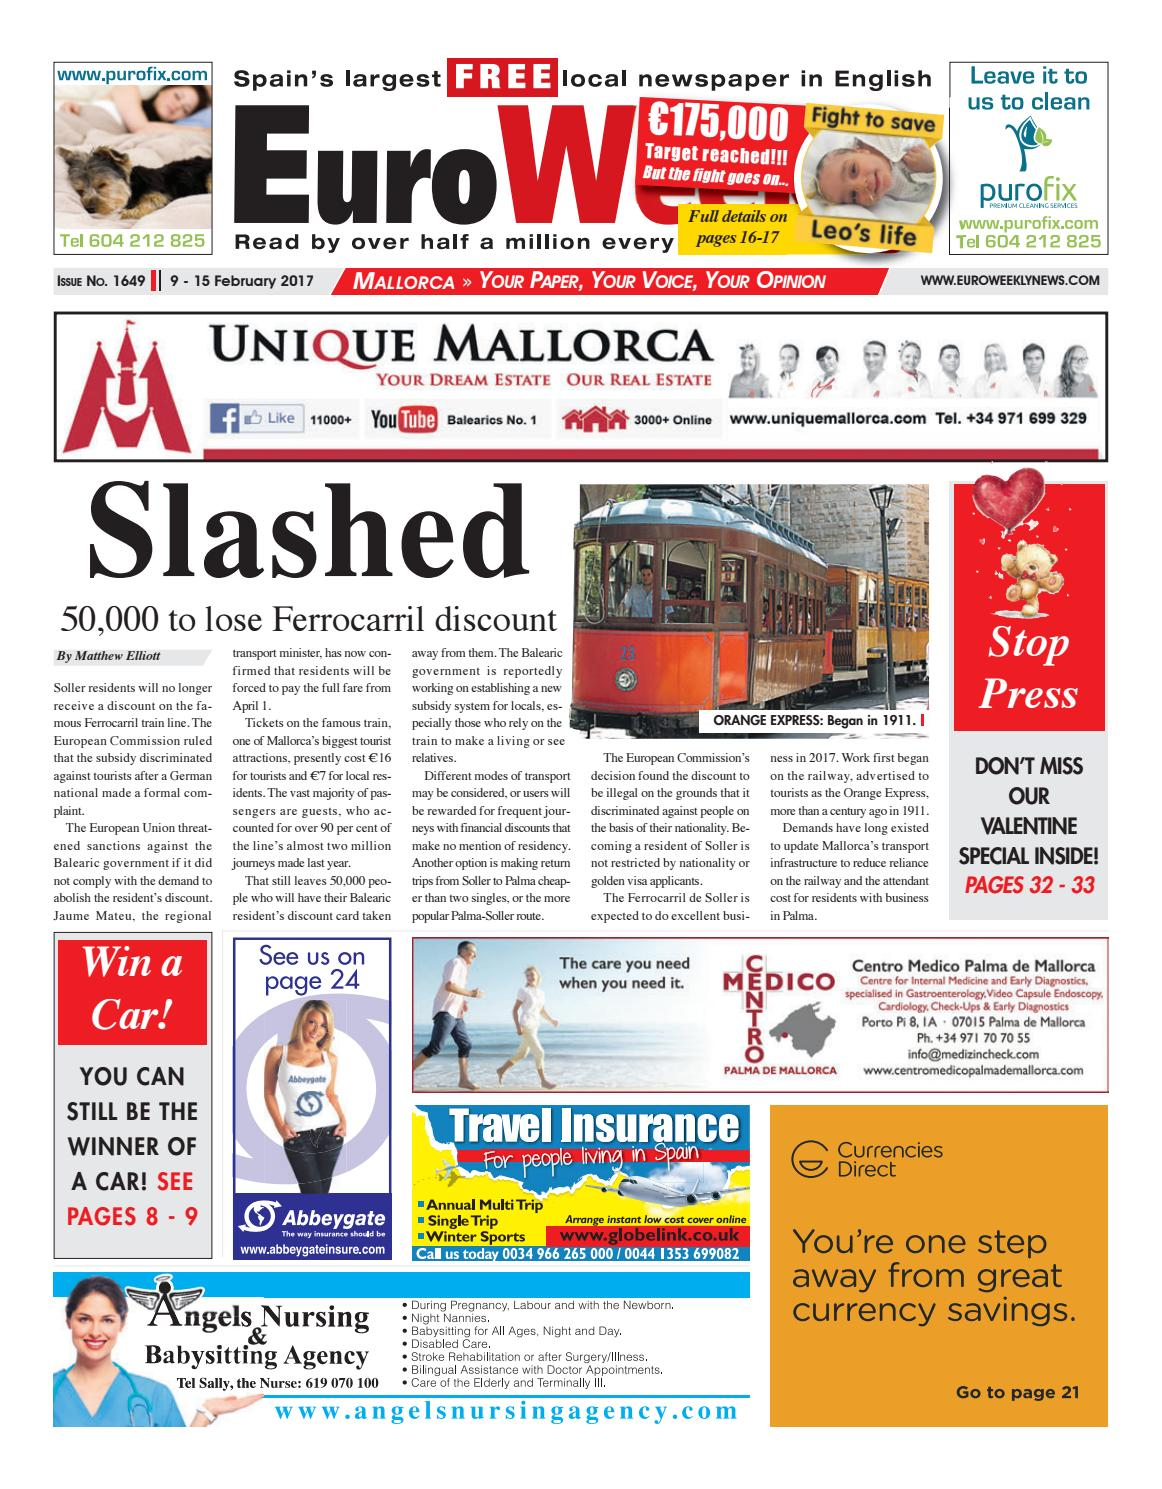 Euro weekly news mallorca 9 15 february 2017 issue 1649 by euro euro weekly news mallorca 9 15 february 2017 issue 1649 by euro weekly news media sa issuu fandeluxe Image collections